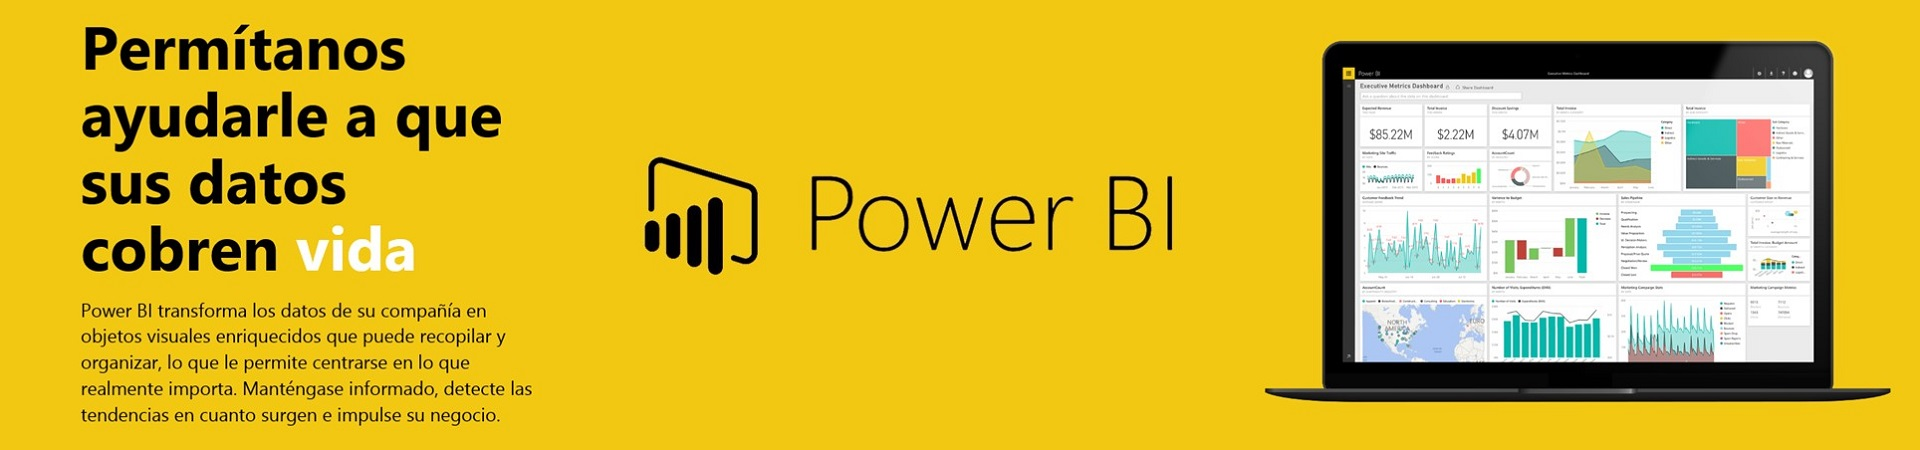 power-bi-slide